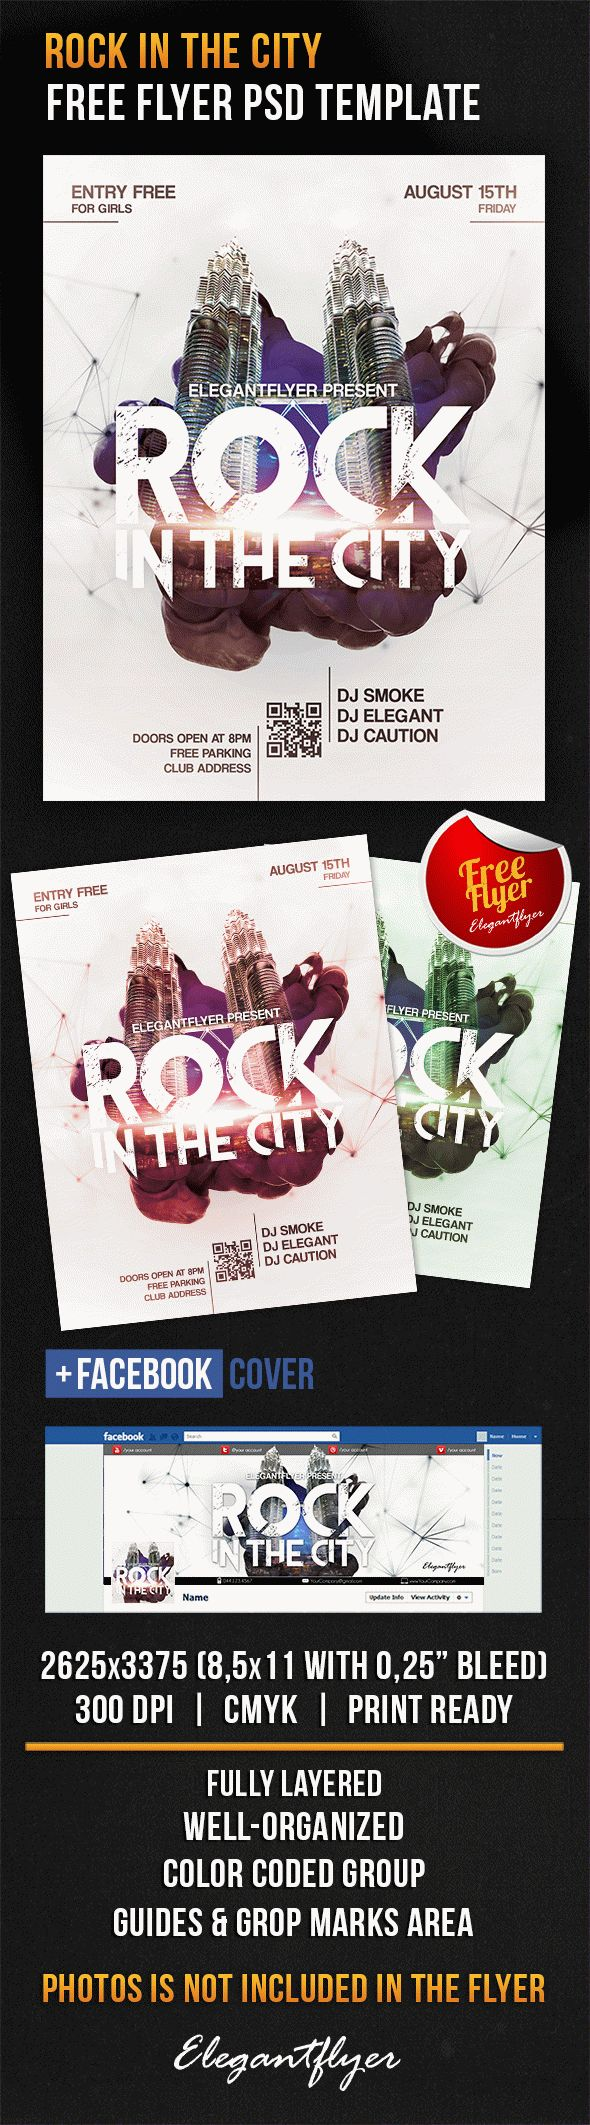 Rock In The City – Free Flyer PSD Template + Facebook Cover